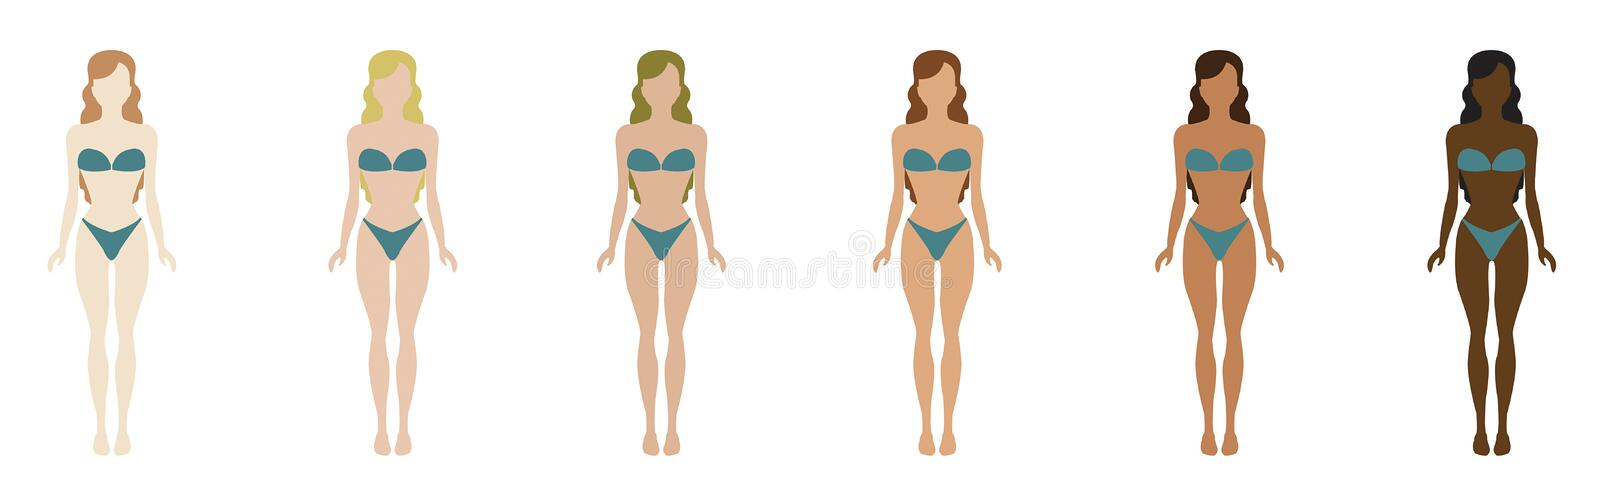 Fitzpatrick skin type, phototypes, girls, color of the complexion. Tanning vector illustration